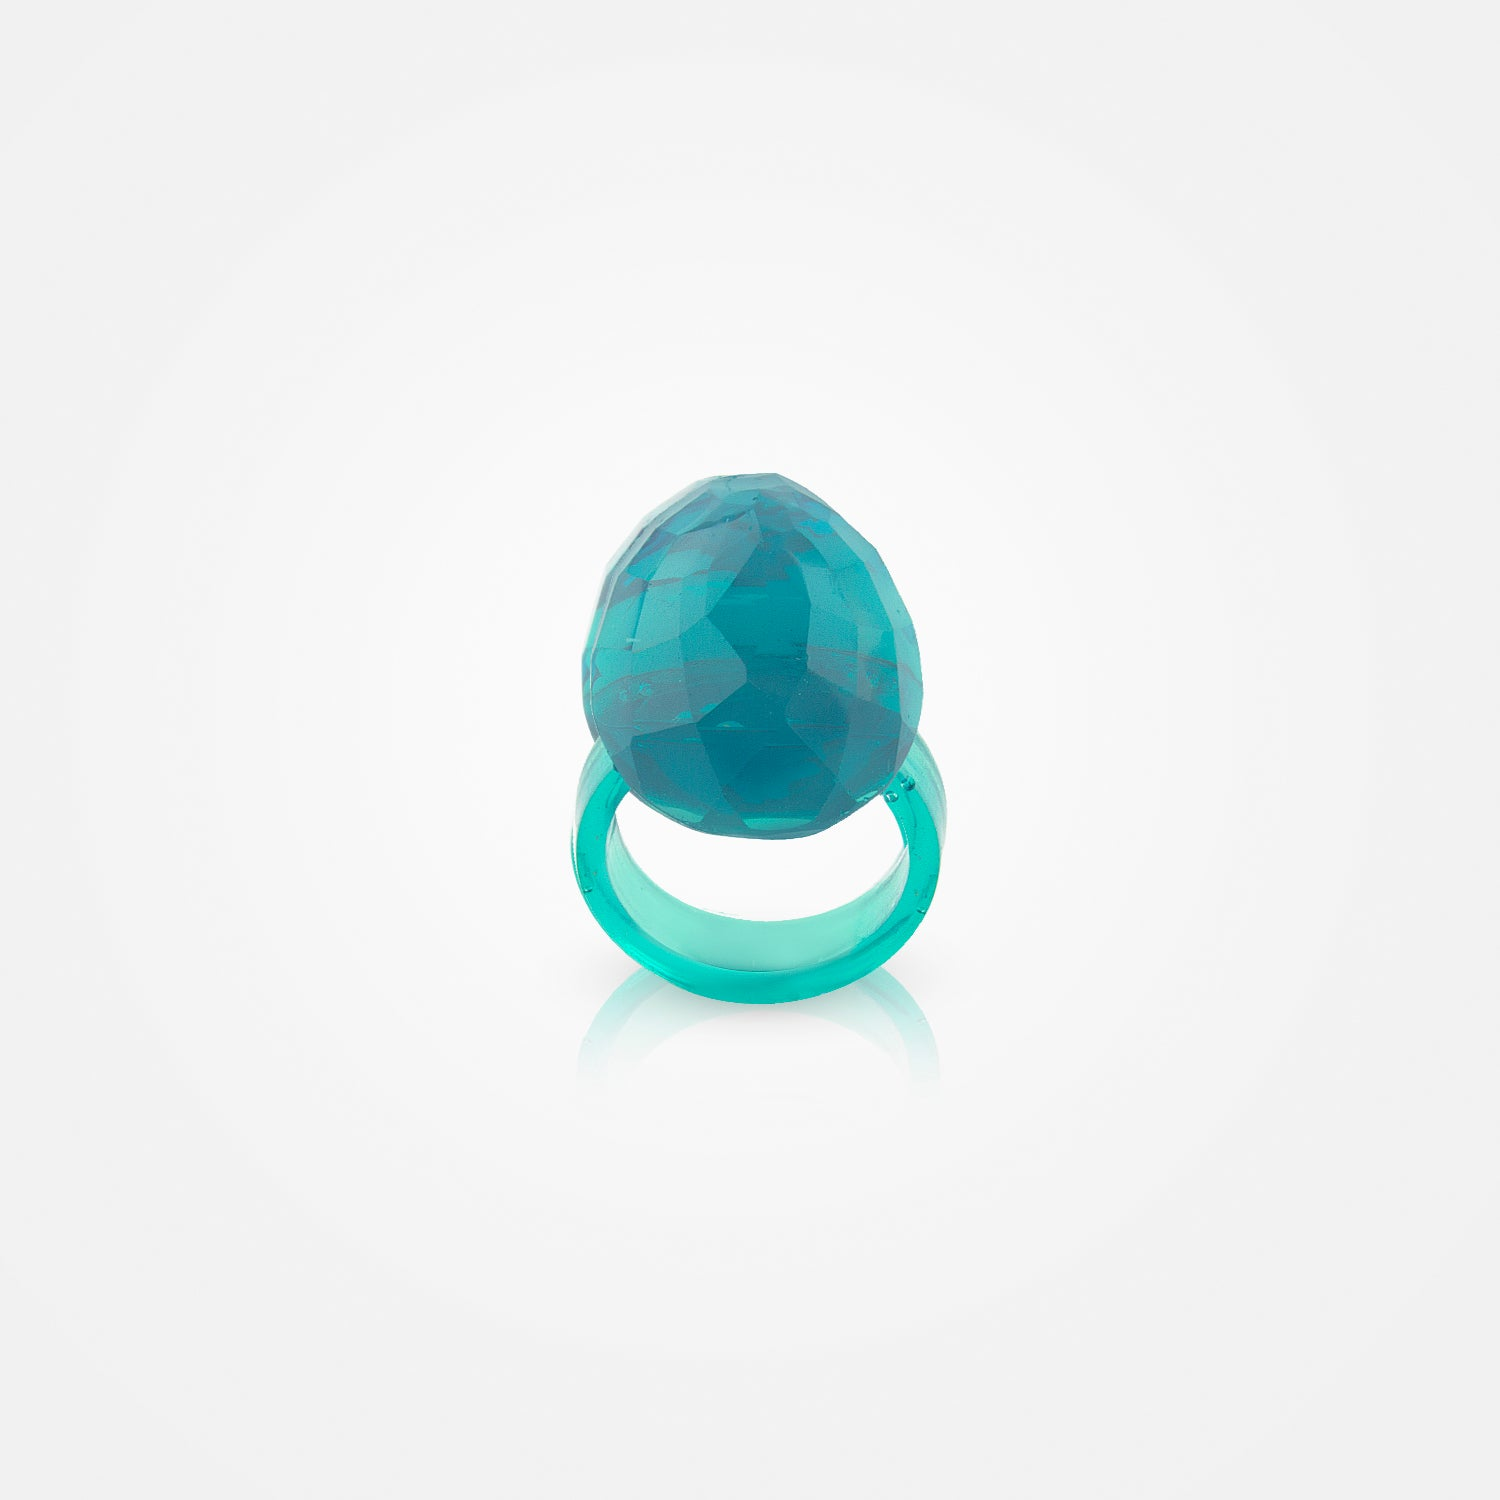 Handmade Crystalline Aqua Ring by Corsi